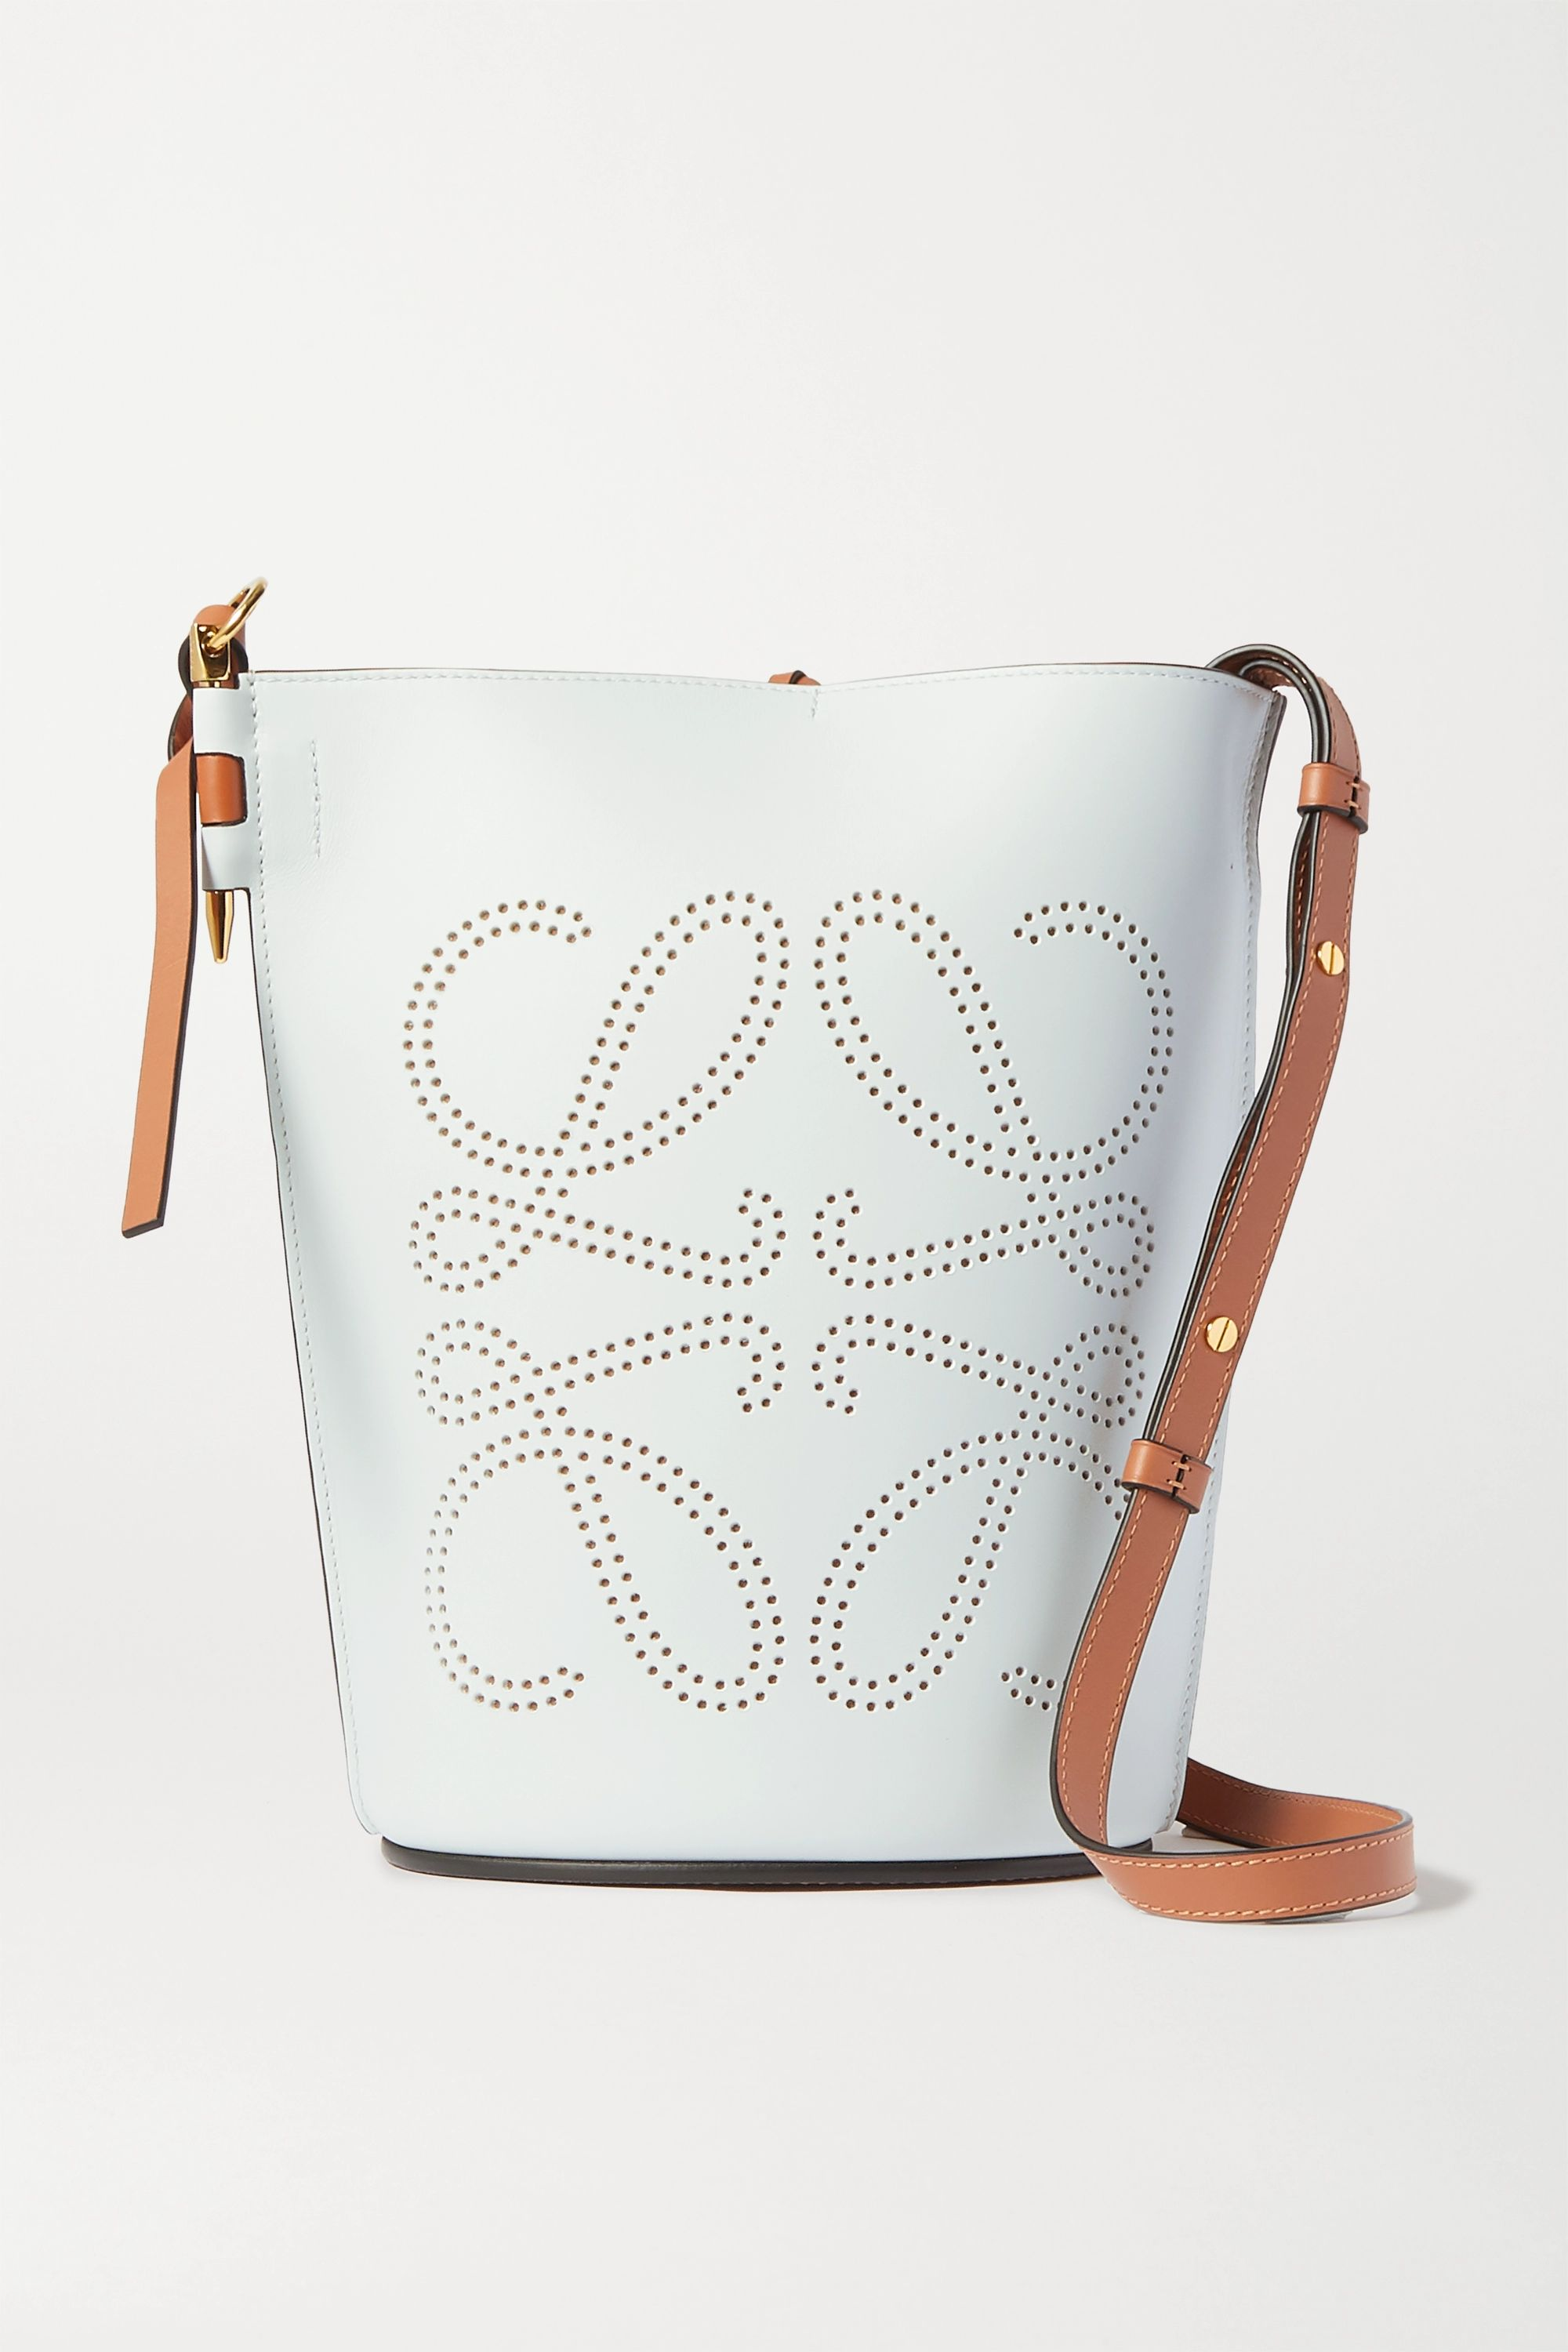 Loewe Gate perforated two-tone leather bucket bag